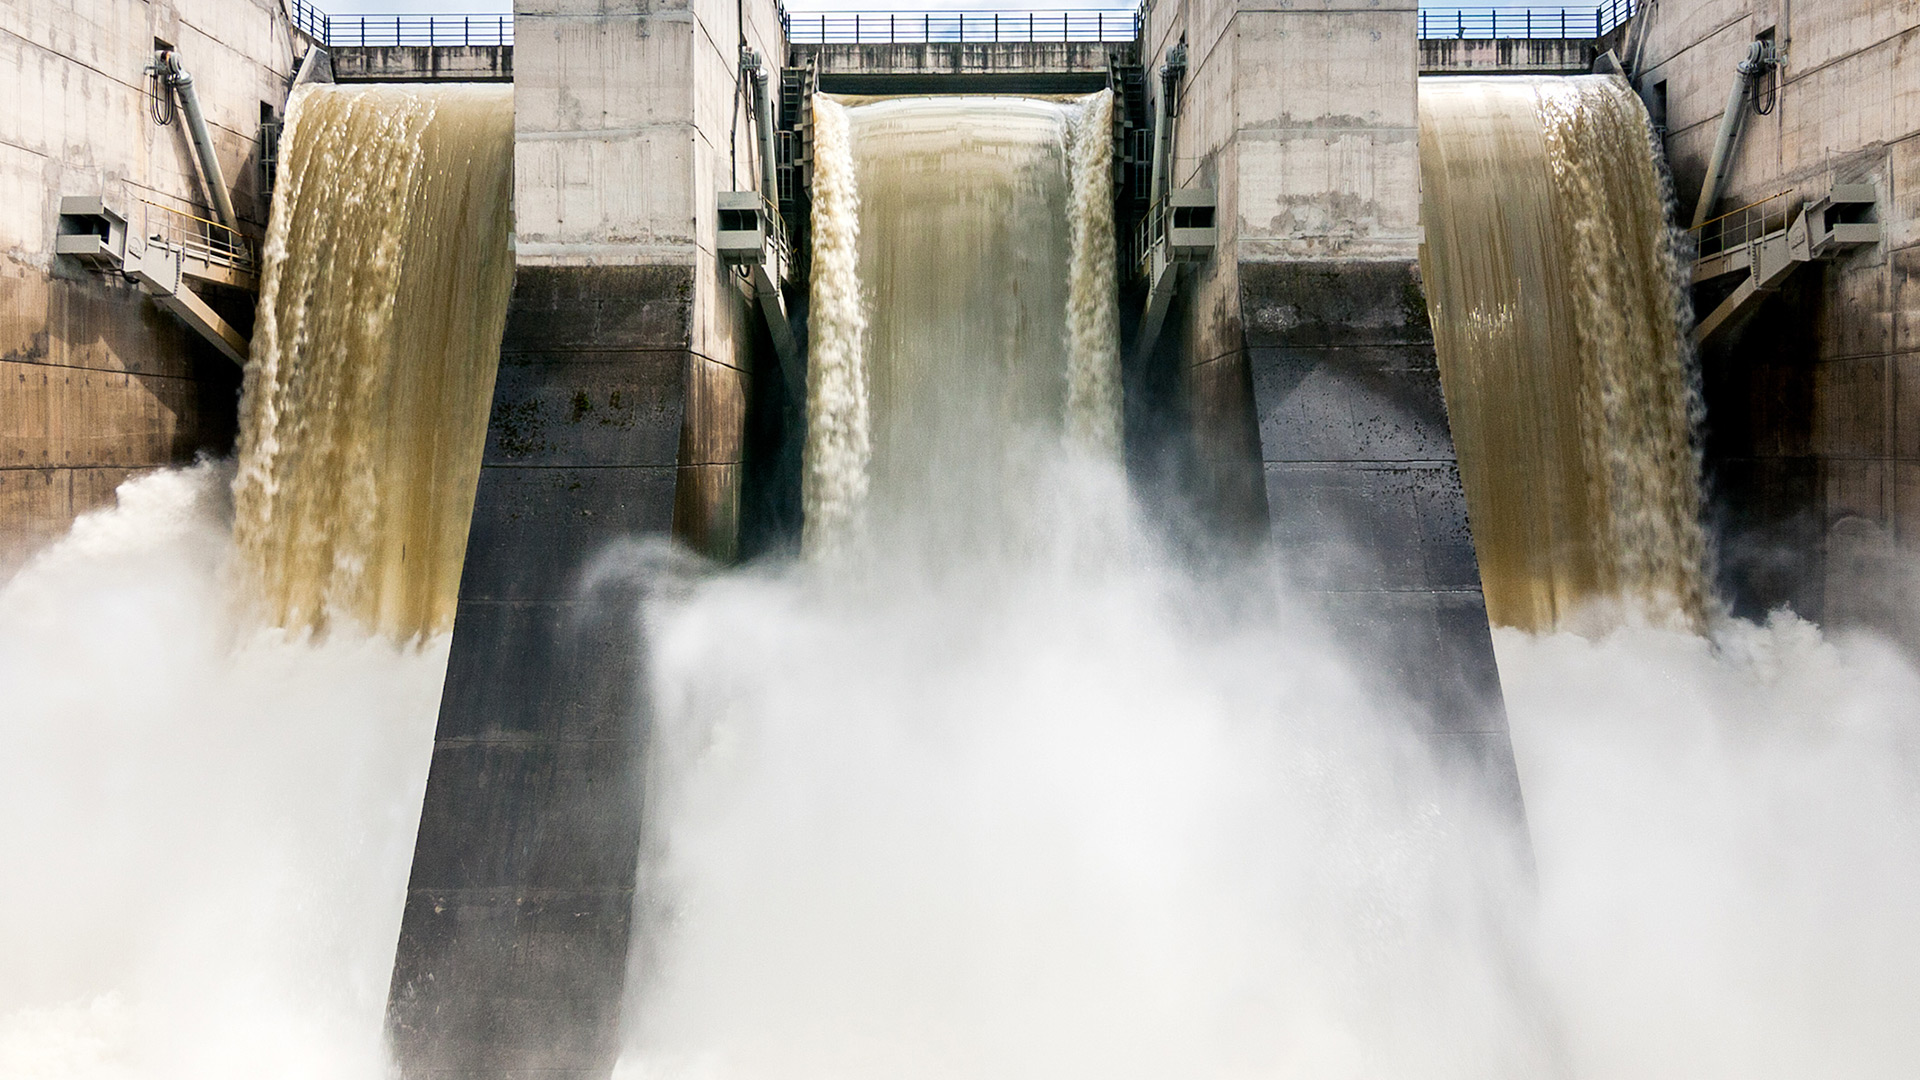 Draining water from the hydroelectric dam